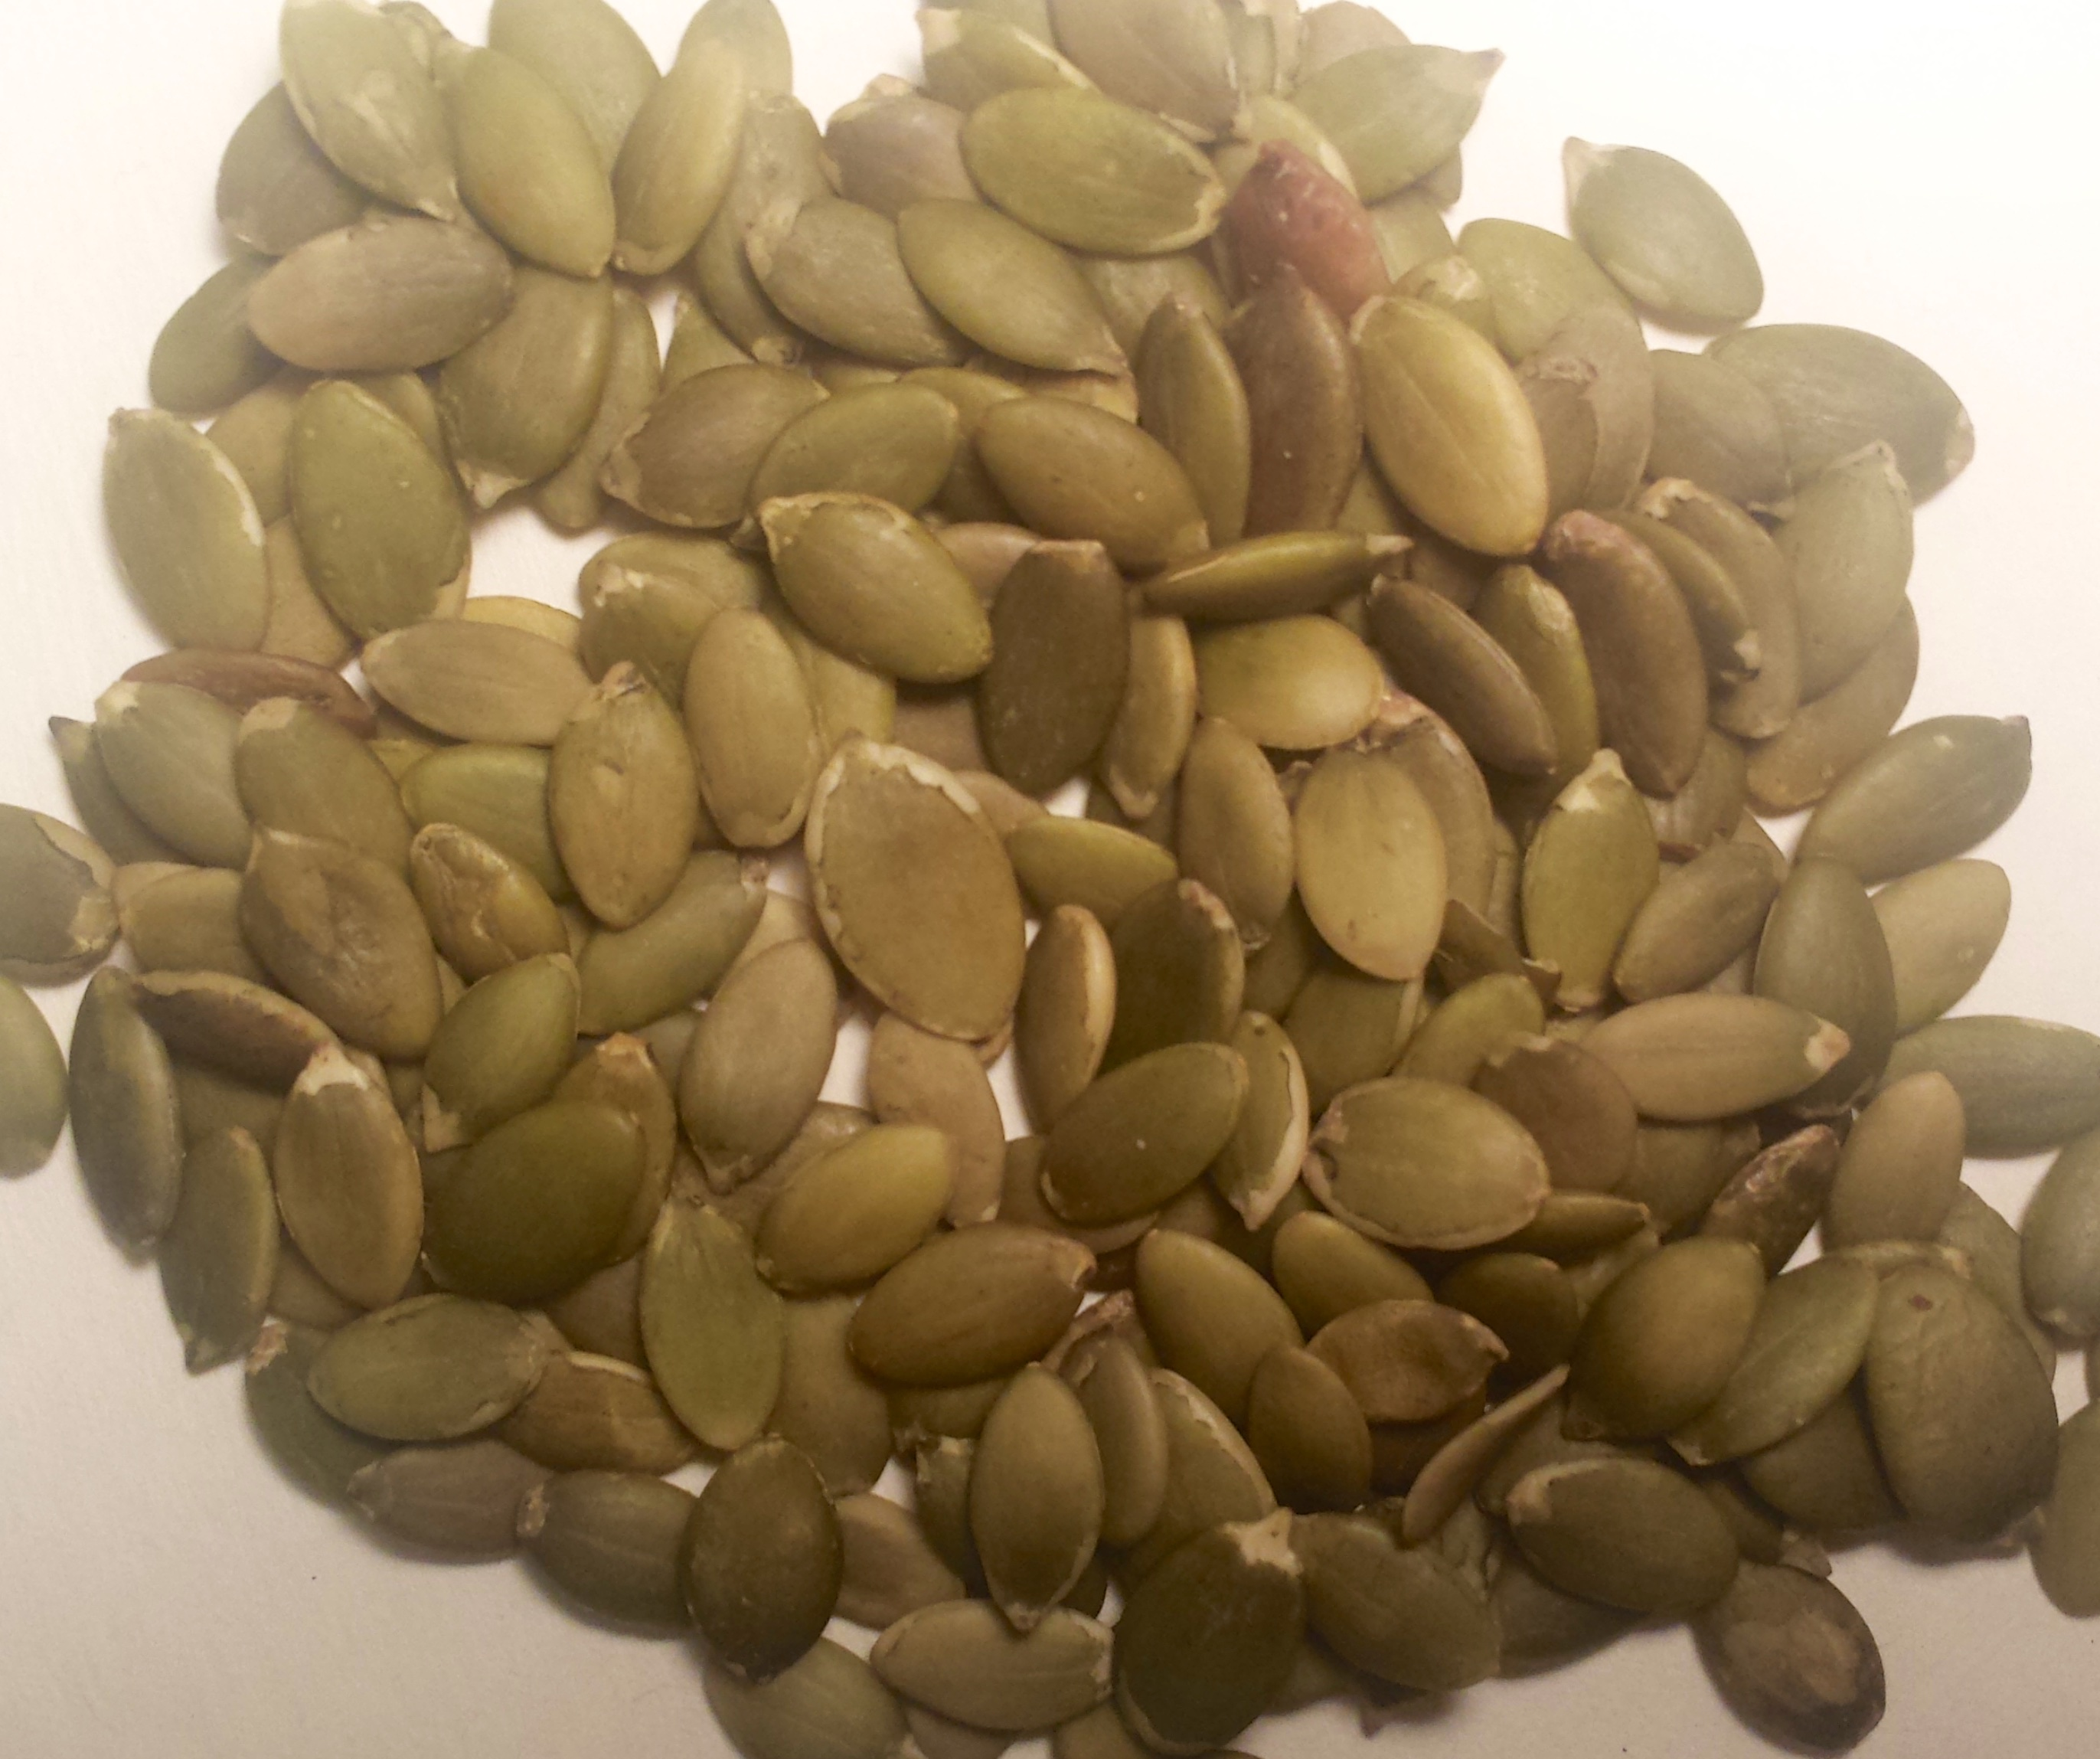 Pumpkin seeds are alkaline forming to help balance highly acidic diets.